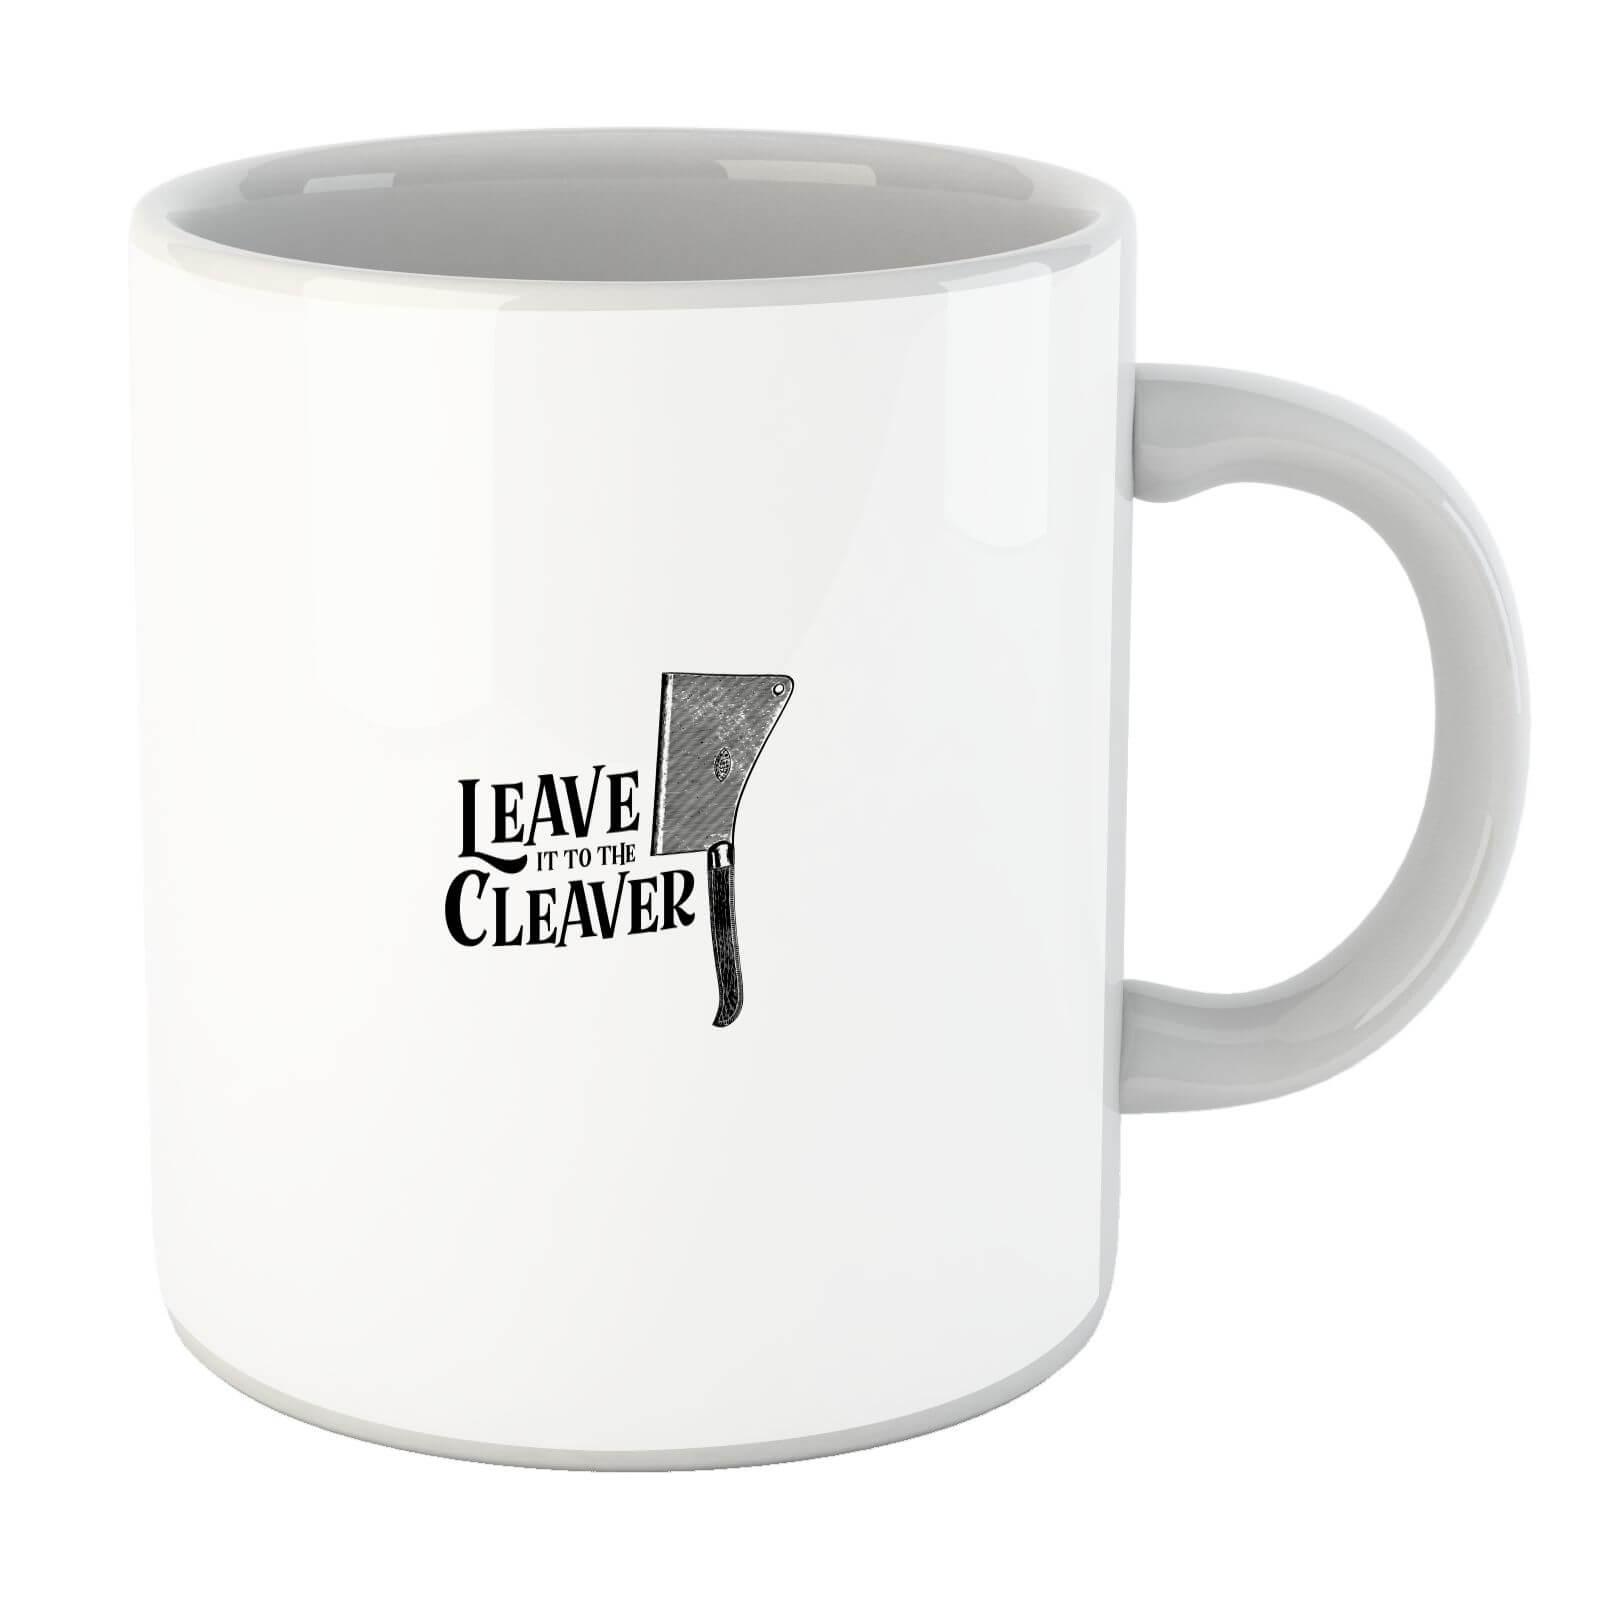 Leave It To The Cleaver Mug